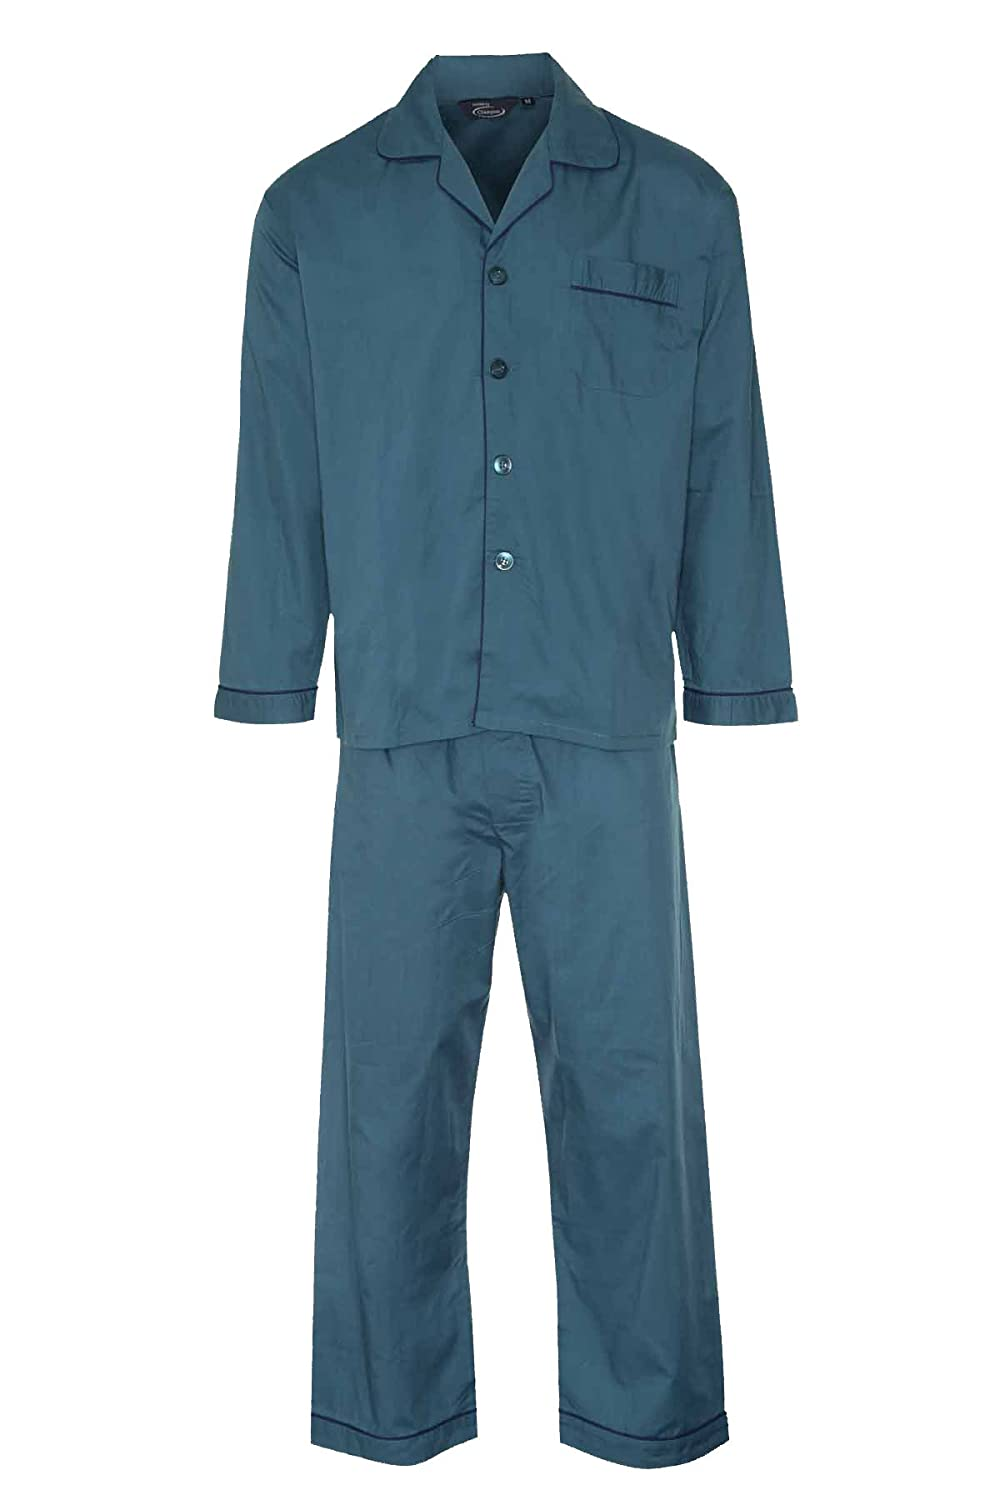 Champion Mens Cotton Blend Button Front Pyjama Set Nightwear Lounge Wear Pajama MPYJ-MASTER-CHAMPION